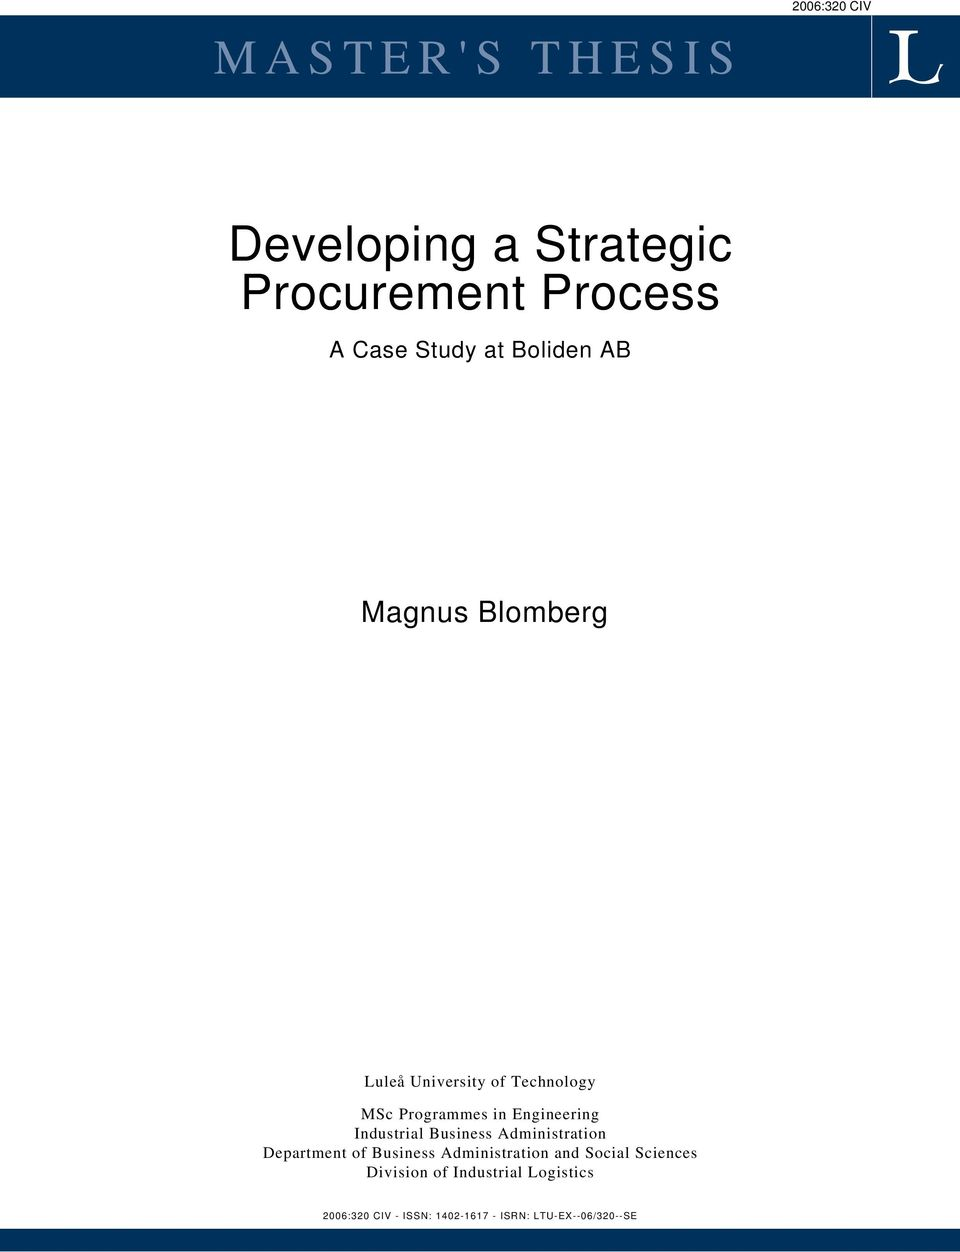 thesis on procurement practices Embedding sustainability in the sourcing and procurement process  implementing sustainable procurement practices can generate additional revenue through premium brand.